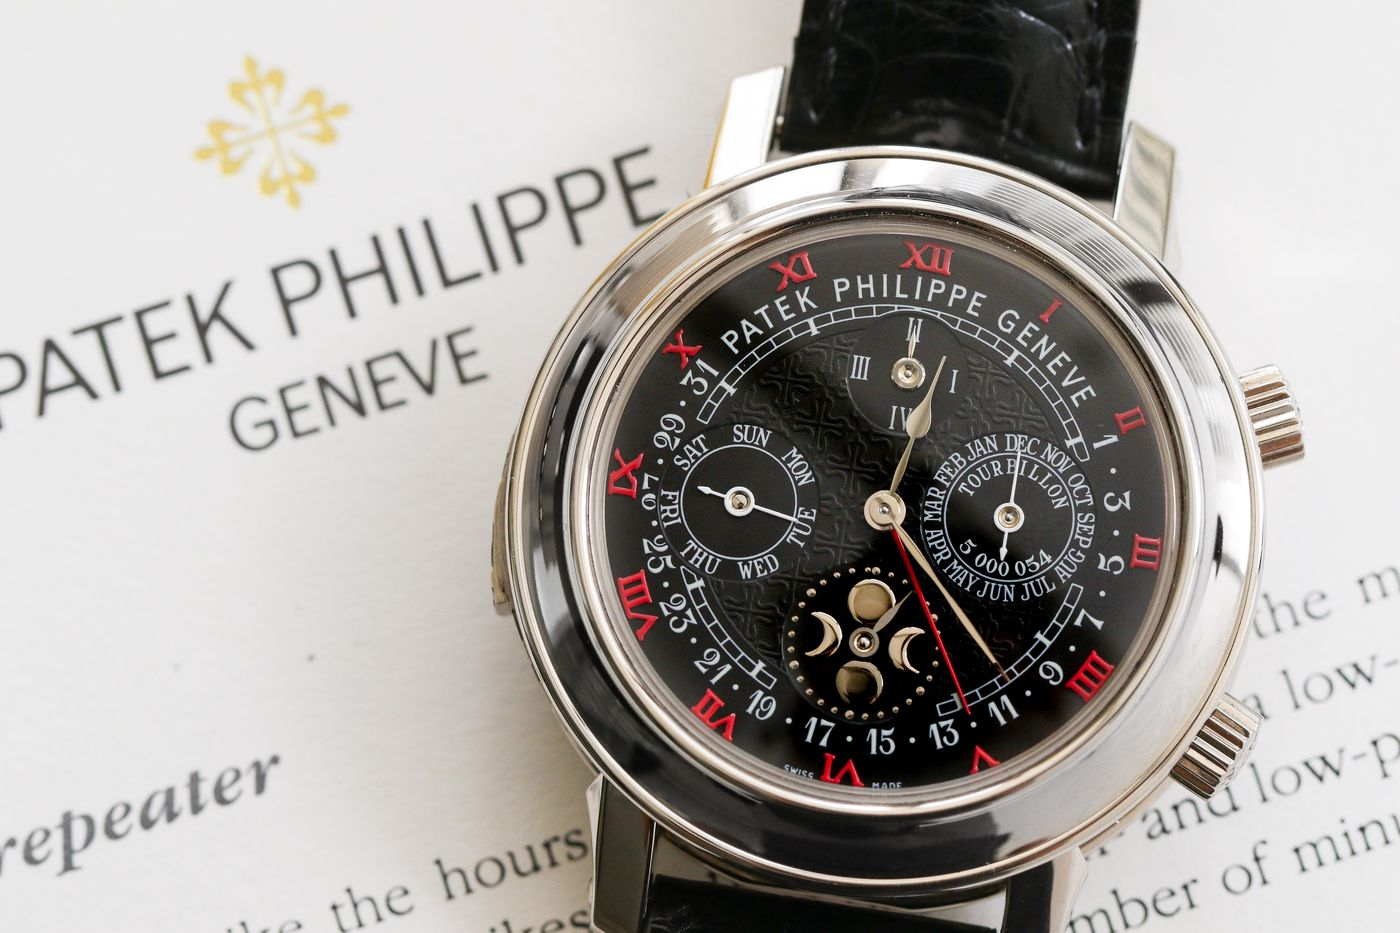 Following an extraordinary spring auction season, marked by the highest result for any watch auction series staged in Asia and the record breaking 100% sold Phillips & Blackbird: SPORTS thematic sale, Phillips in Association with Bacs & Russo, the global market leader in collectors' watches, is delighted to unveil highlights from The Hong Kong Watch Auction: NINE.